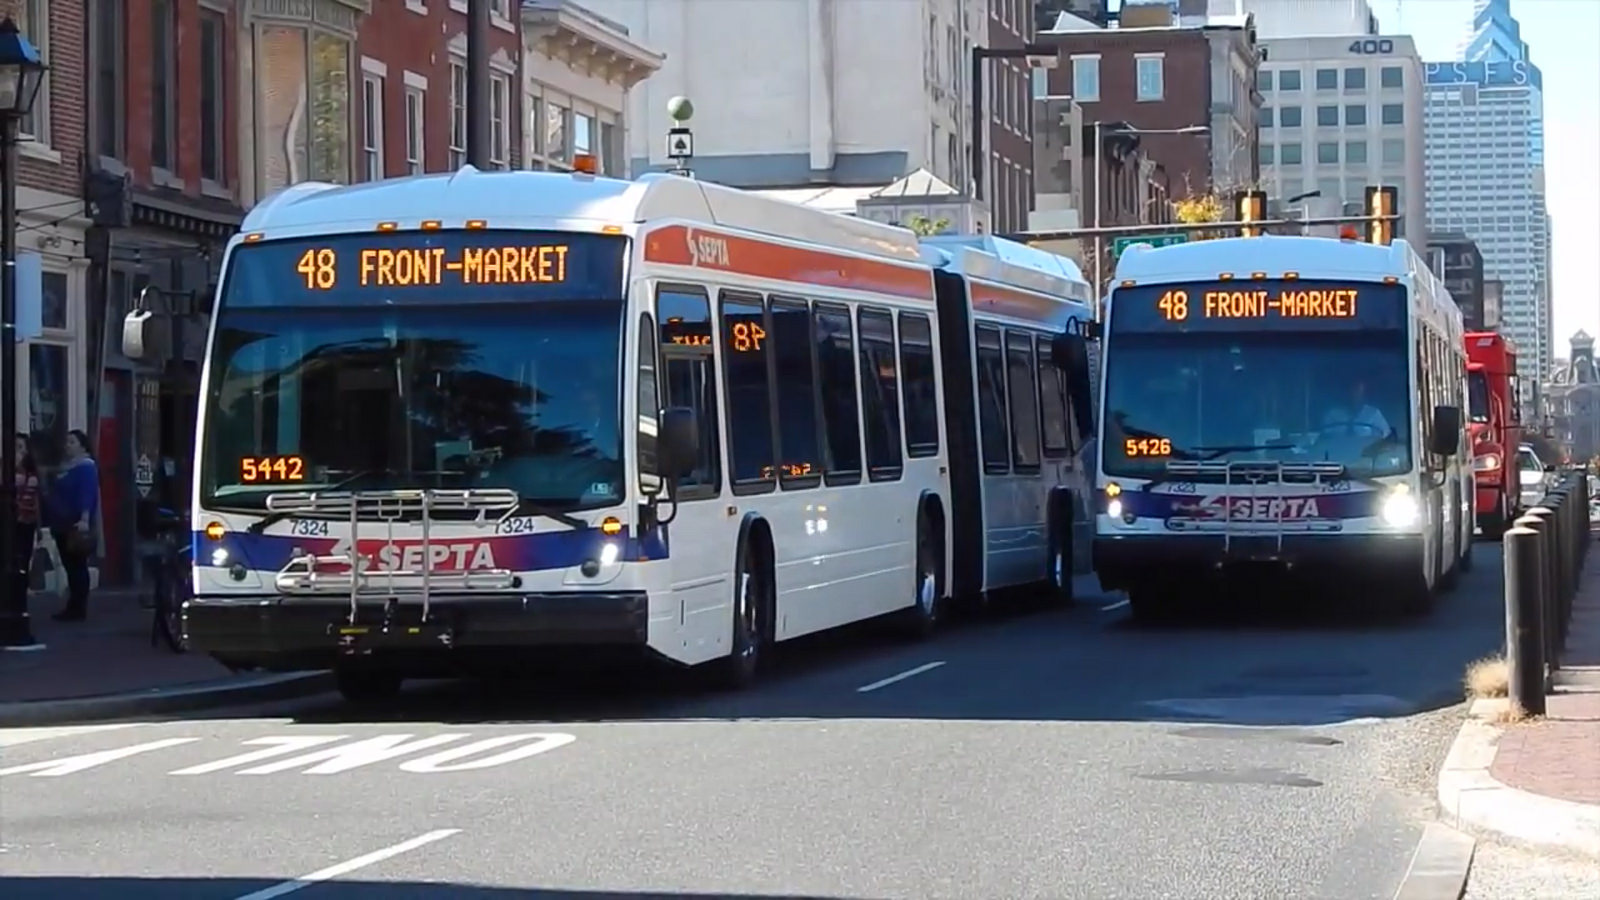 The Pennsylvania Urban Legend Of A Bus To Nowhere Will